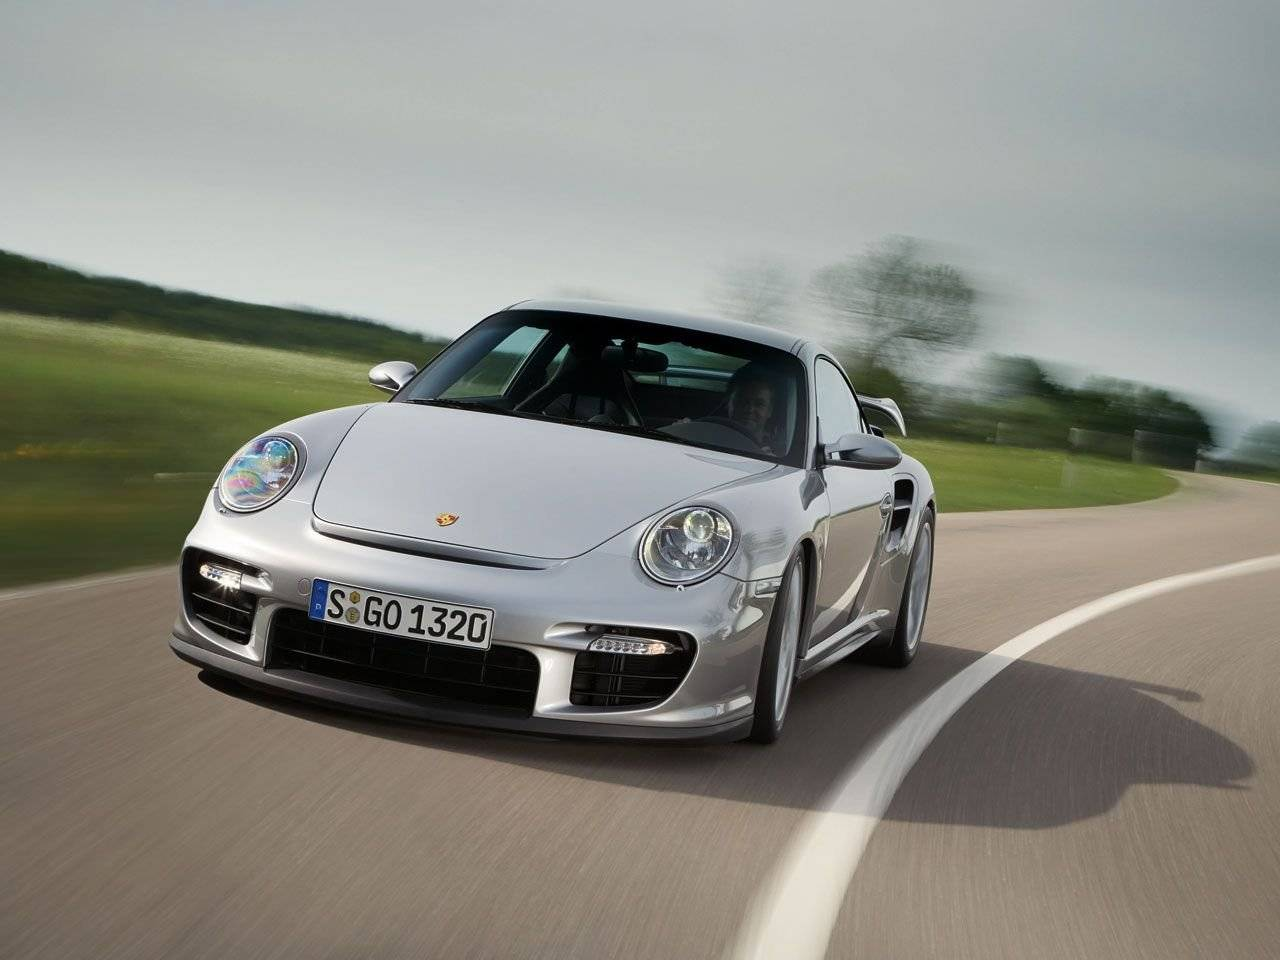 porsche 911 gt2 snelste 911 voor de weg autonieuws. Black Bedroom Furniture Sets. Home Design Ideas